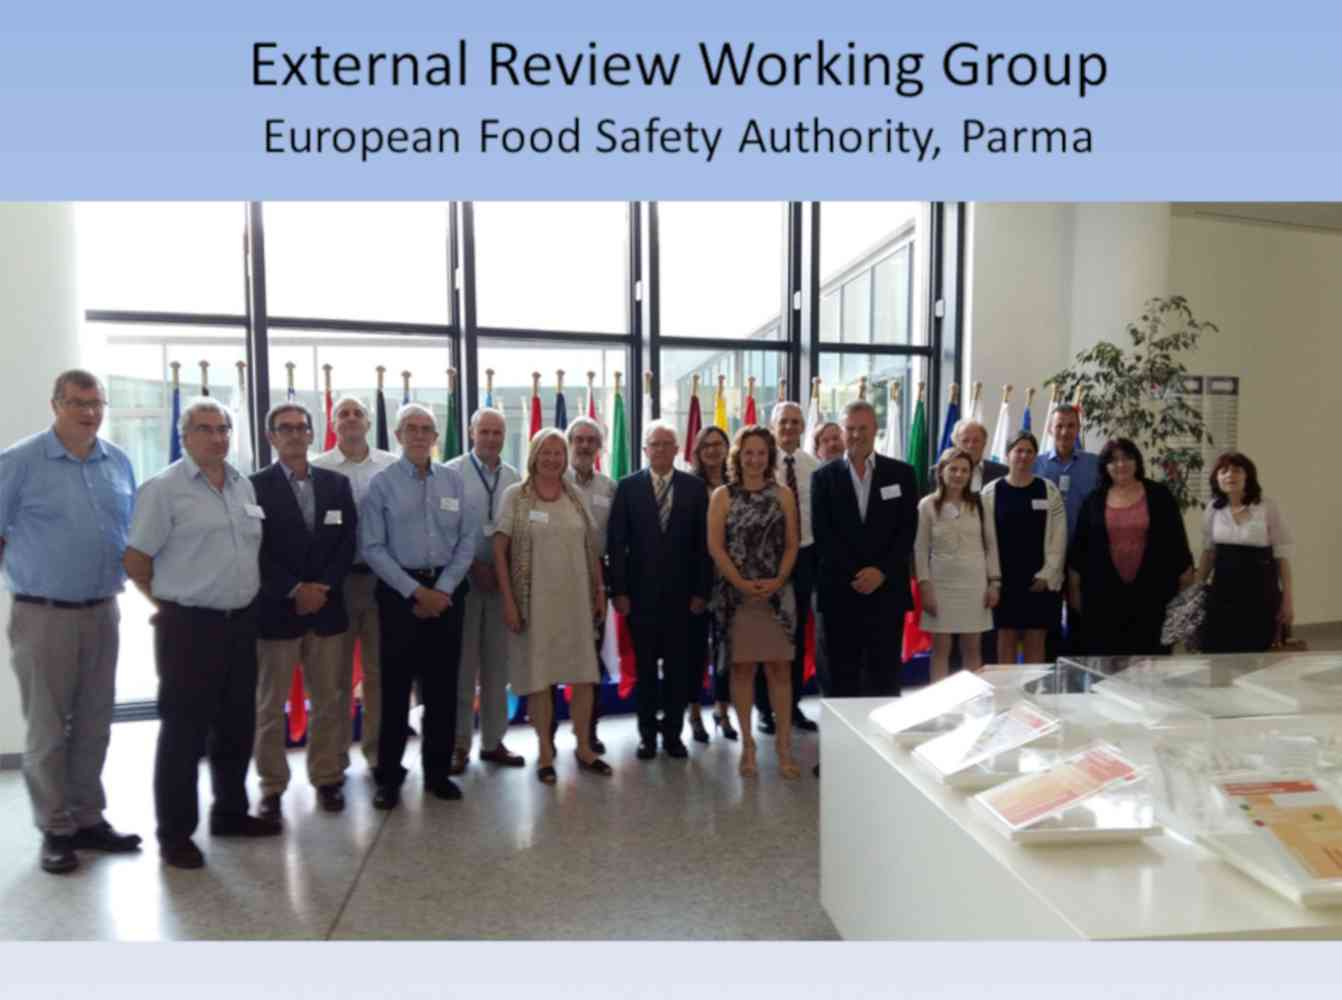 External Review Working Group for the European Food Safety Authority - ERWG Meeting at Parma